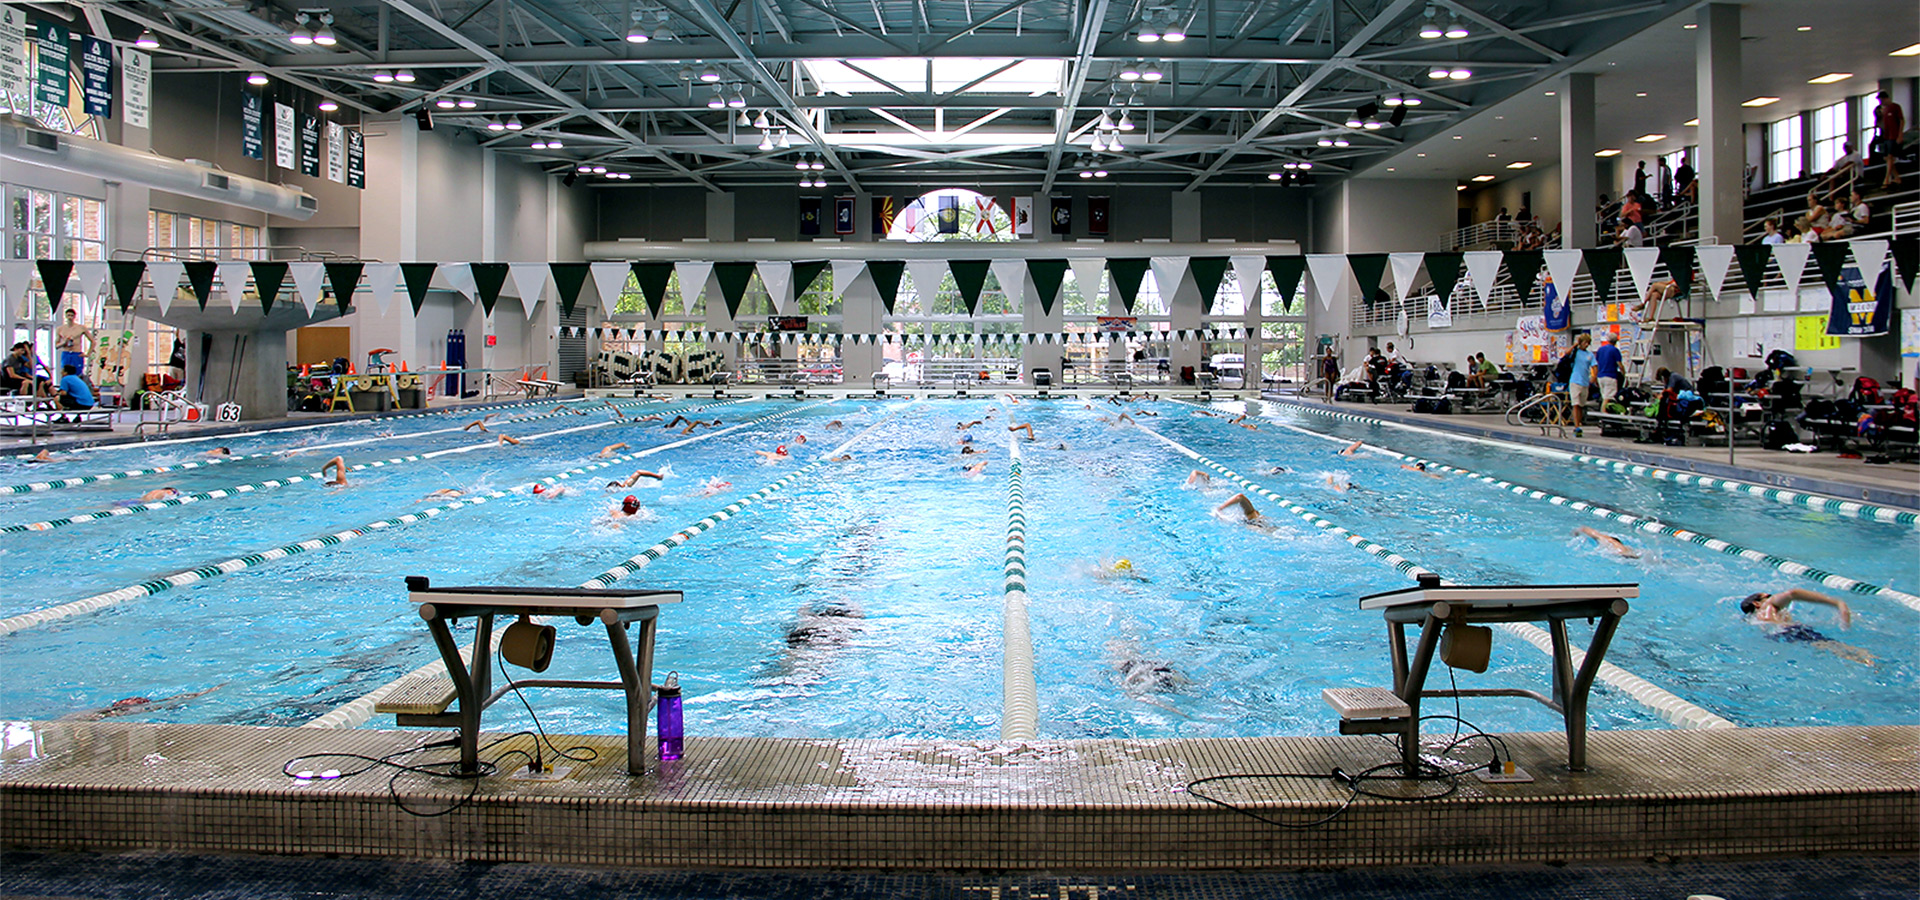 Delta state to host biggest swim meet of the year news - How long after pool shock before swim ...